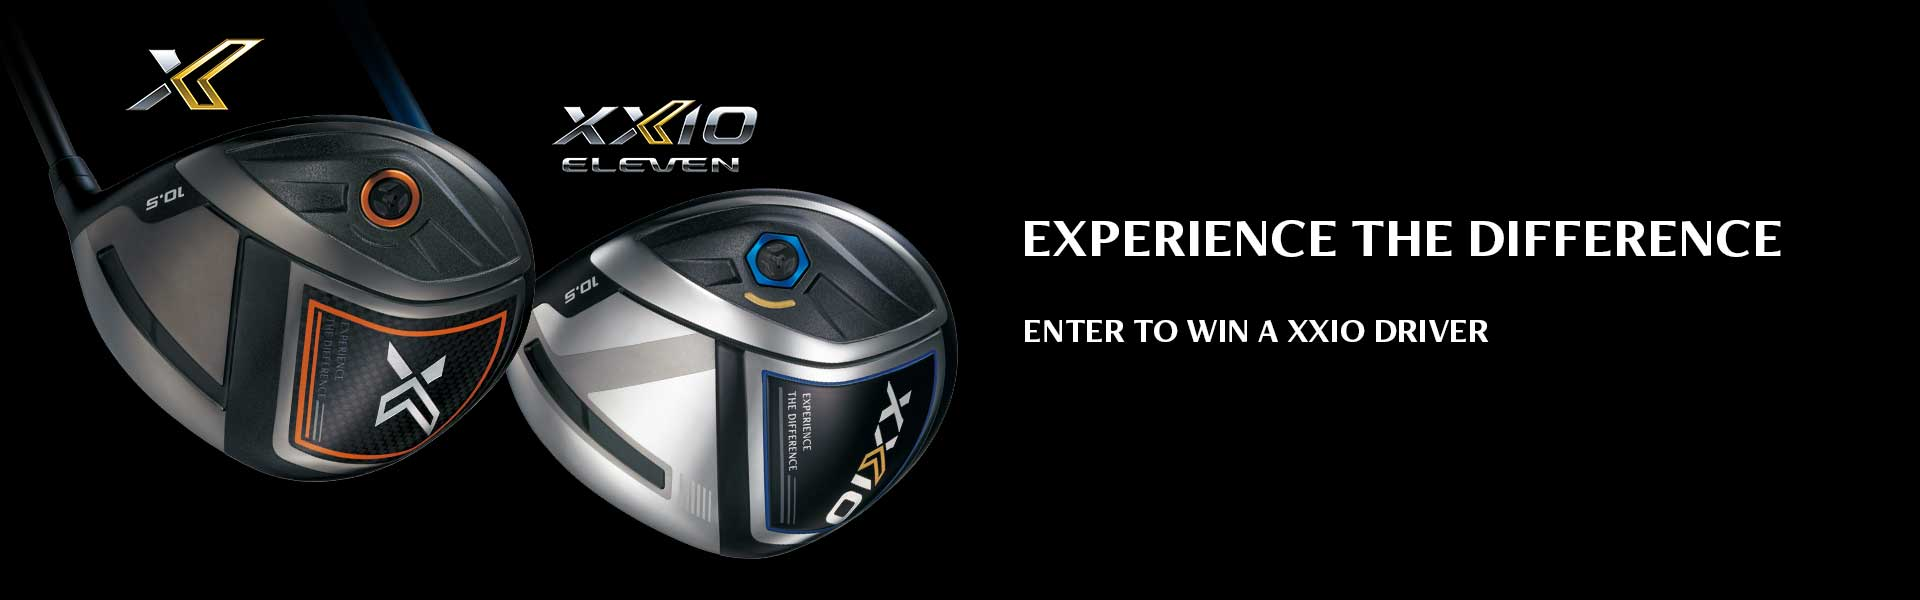 Enter to Win a XXIO Driver